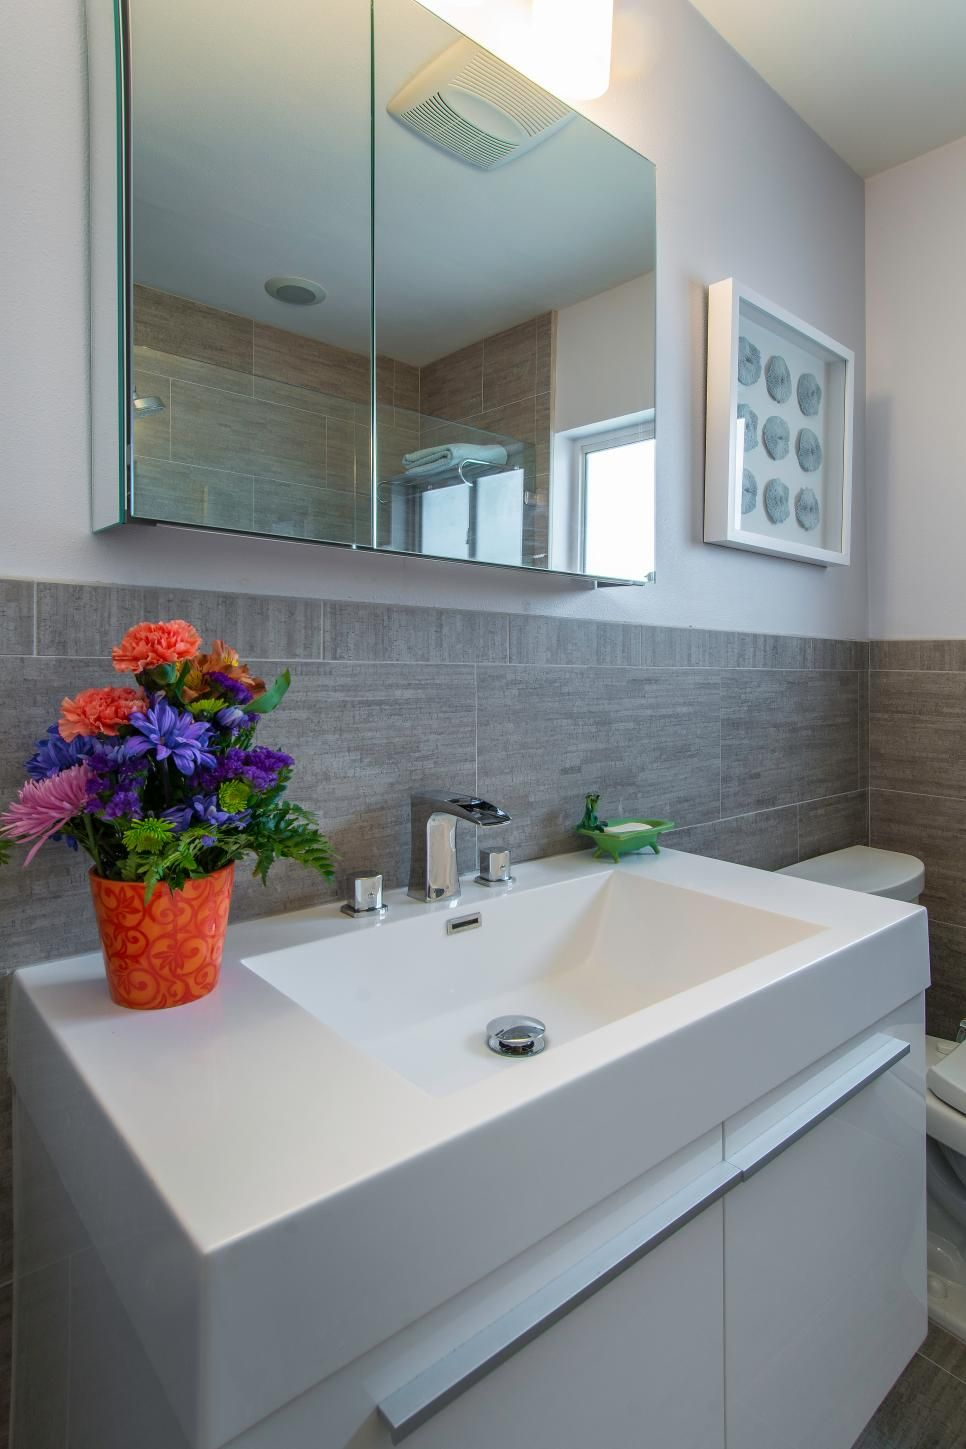 Gray tile work along the floor and running up the wall imparts a ...